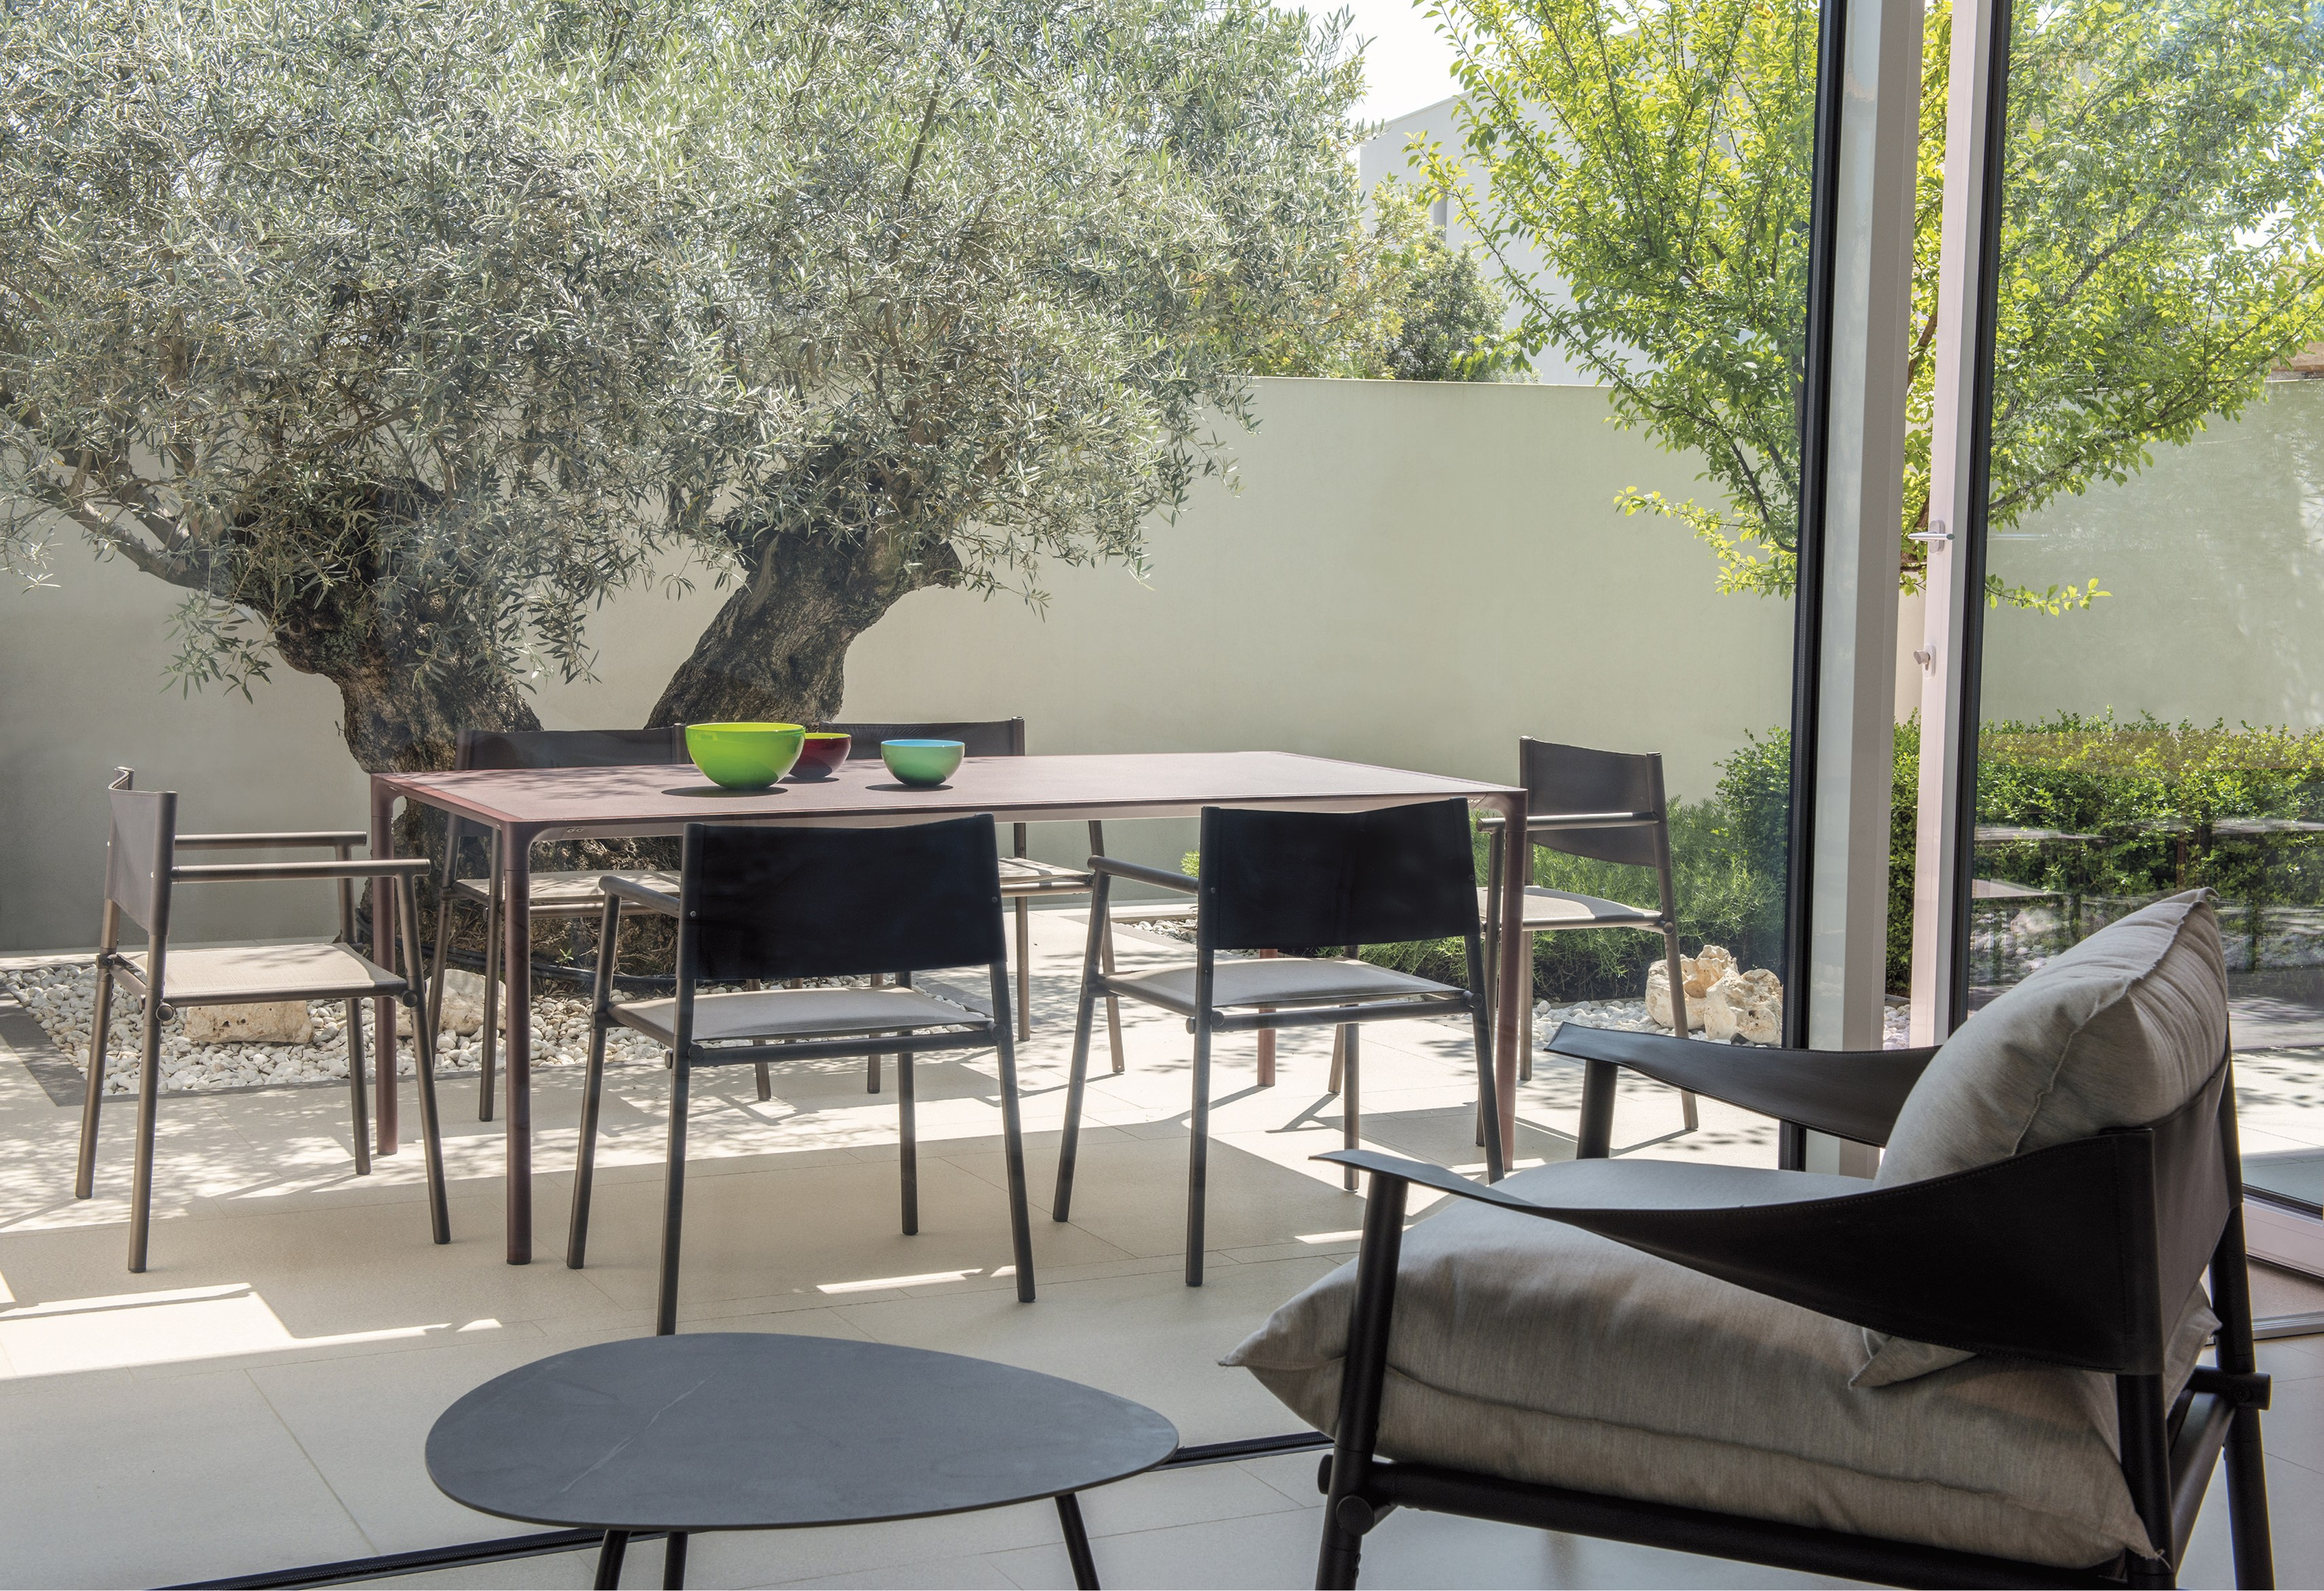 Emu Patio Furniture Home Design Ideas and Inspiration